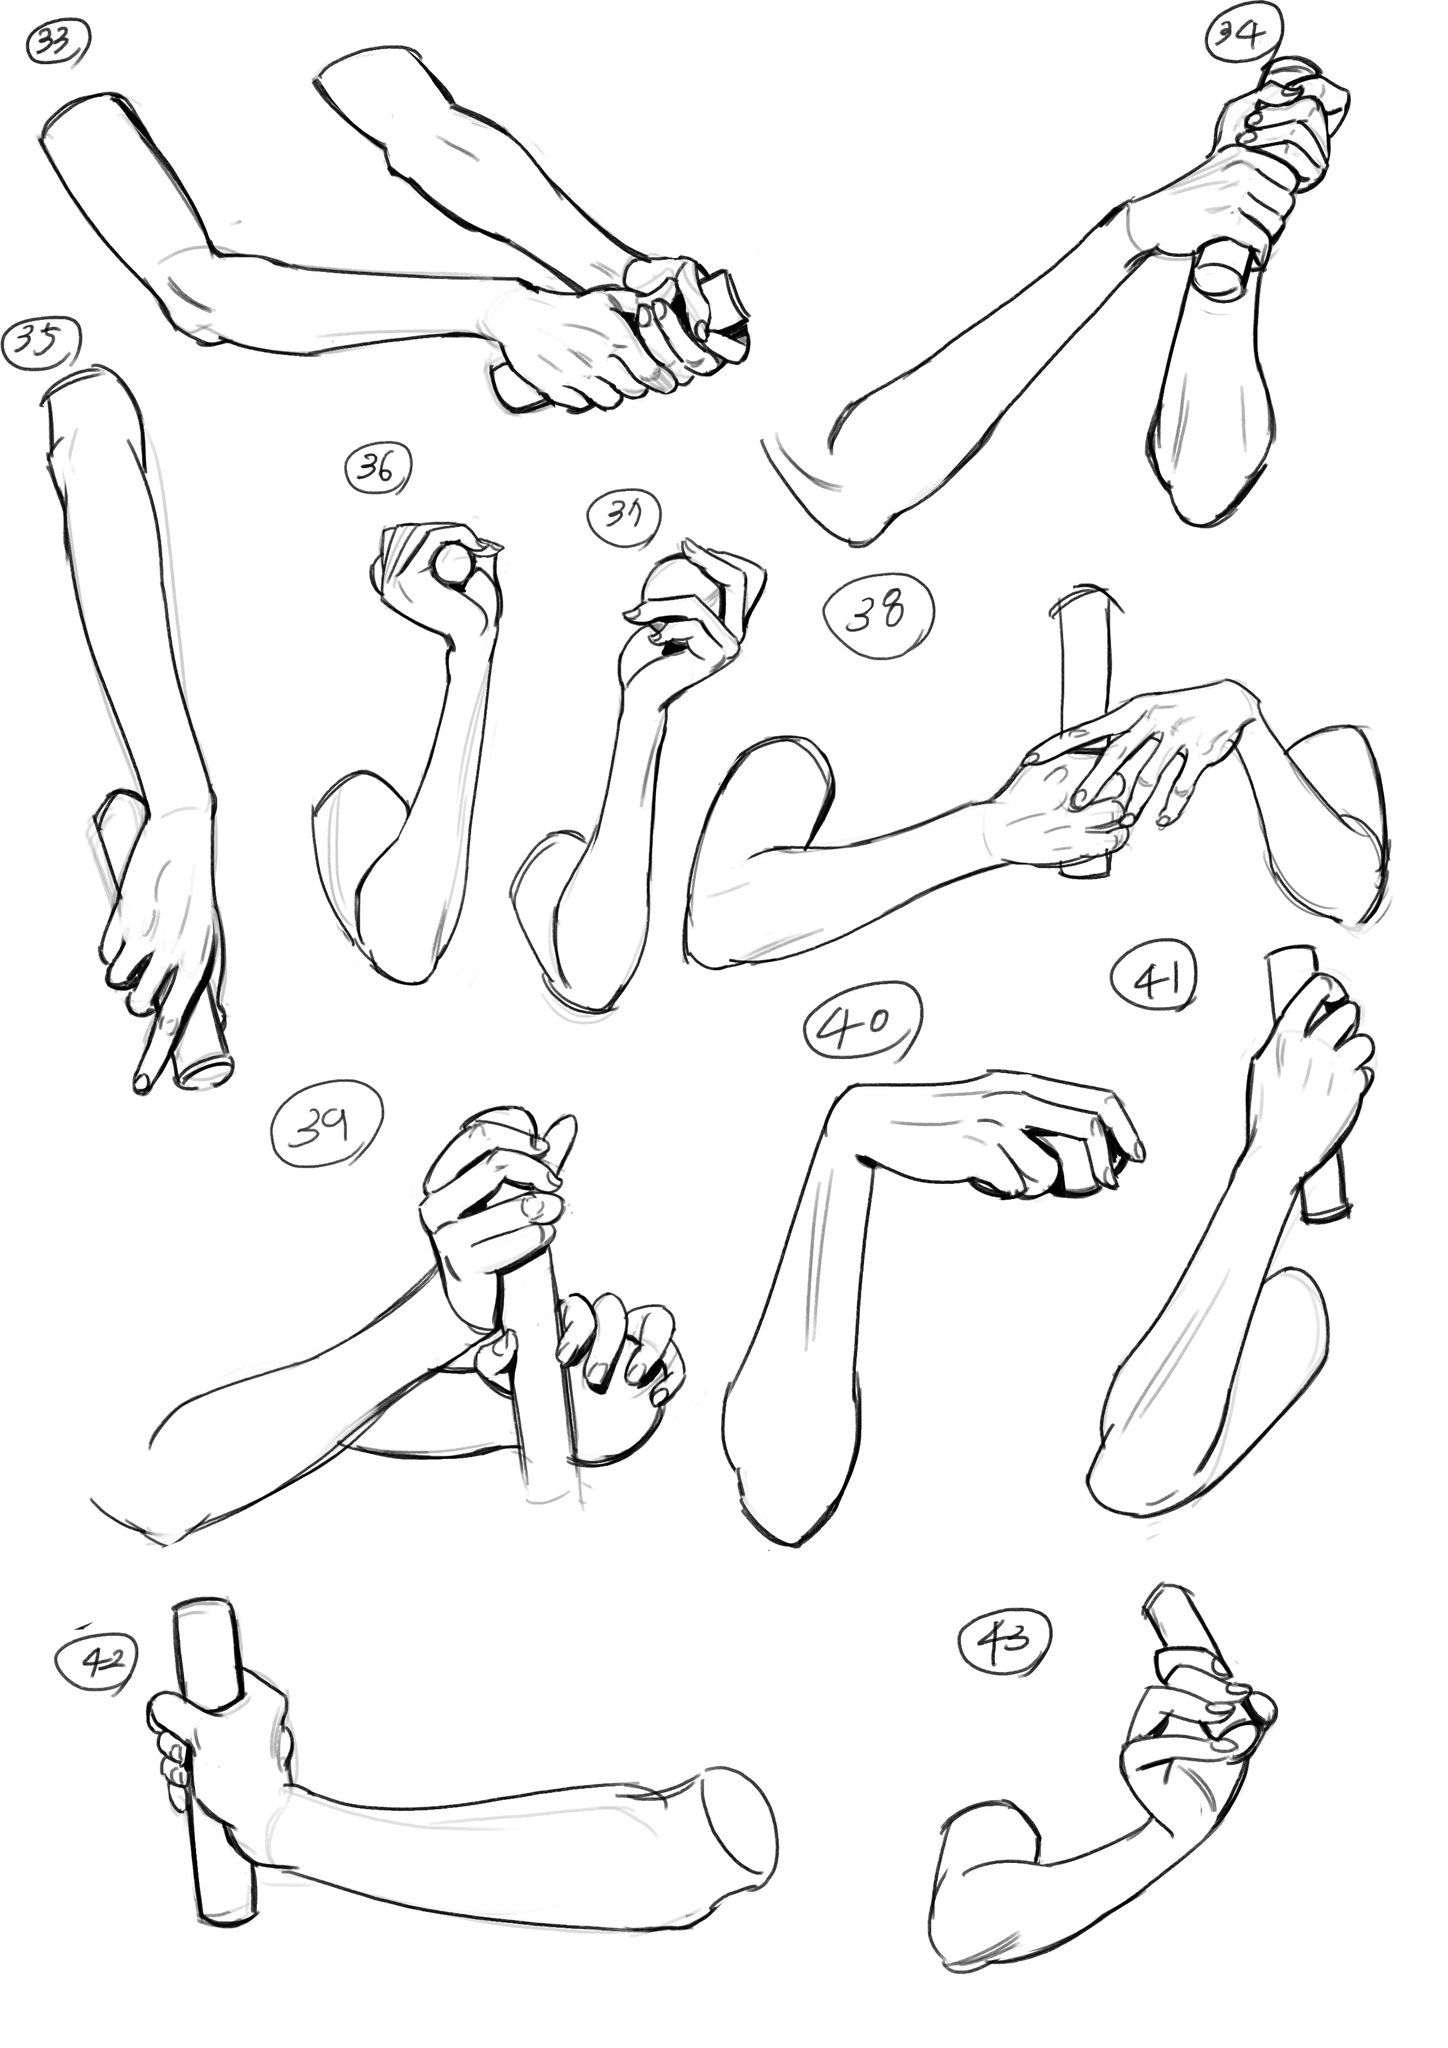 Hand Gestures Easy Anime Drawings Step By Step Tutorial Black And White Sketch In 2020 Anime Drawings Sketches Anime Drawings Hand Drawing Reference